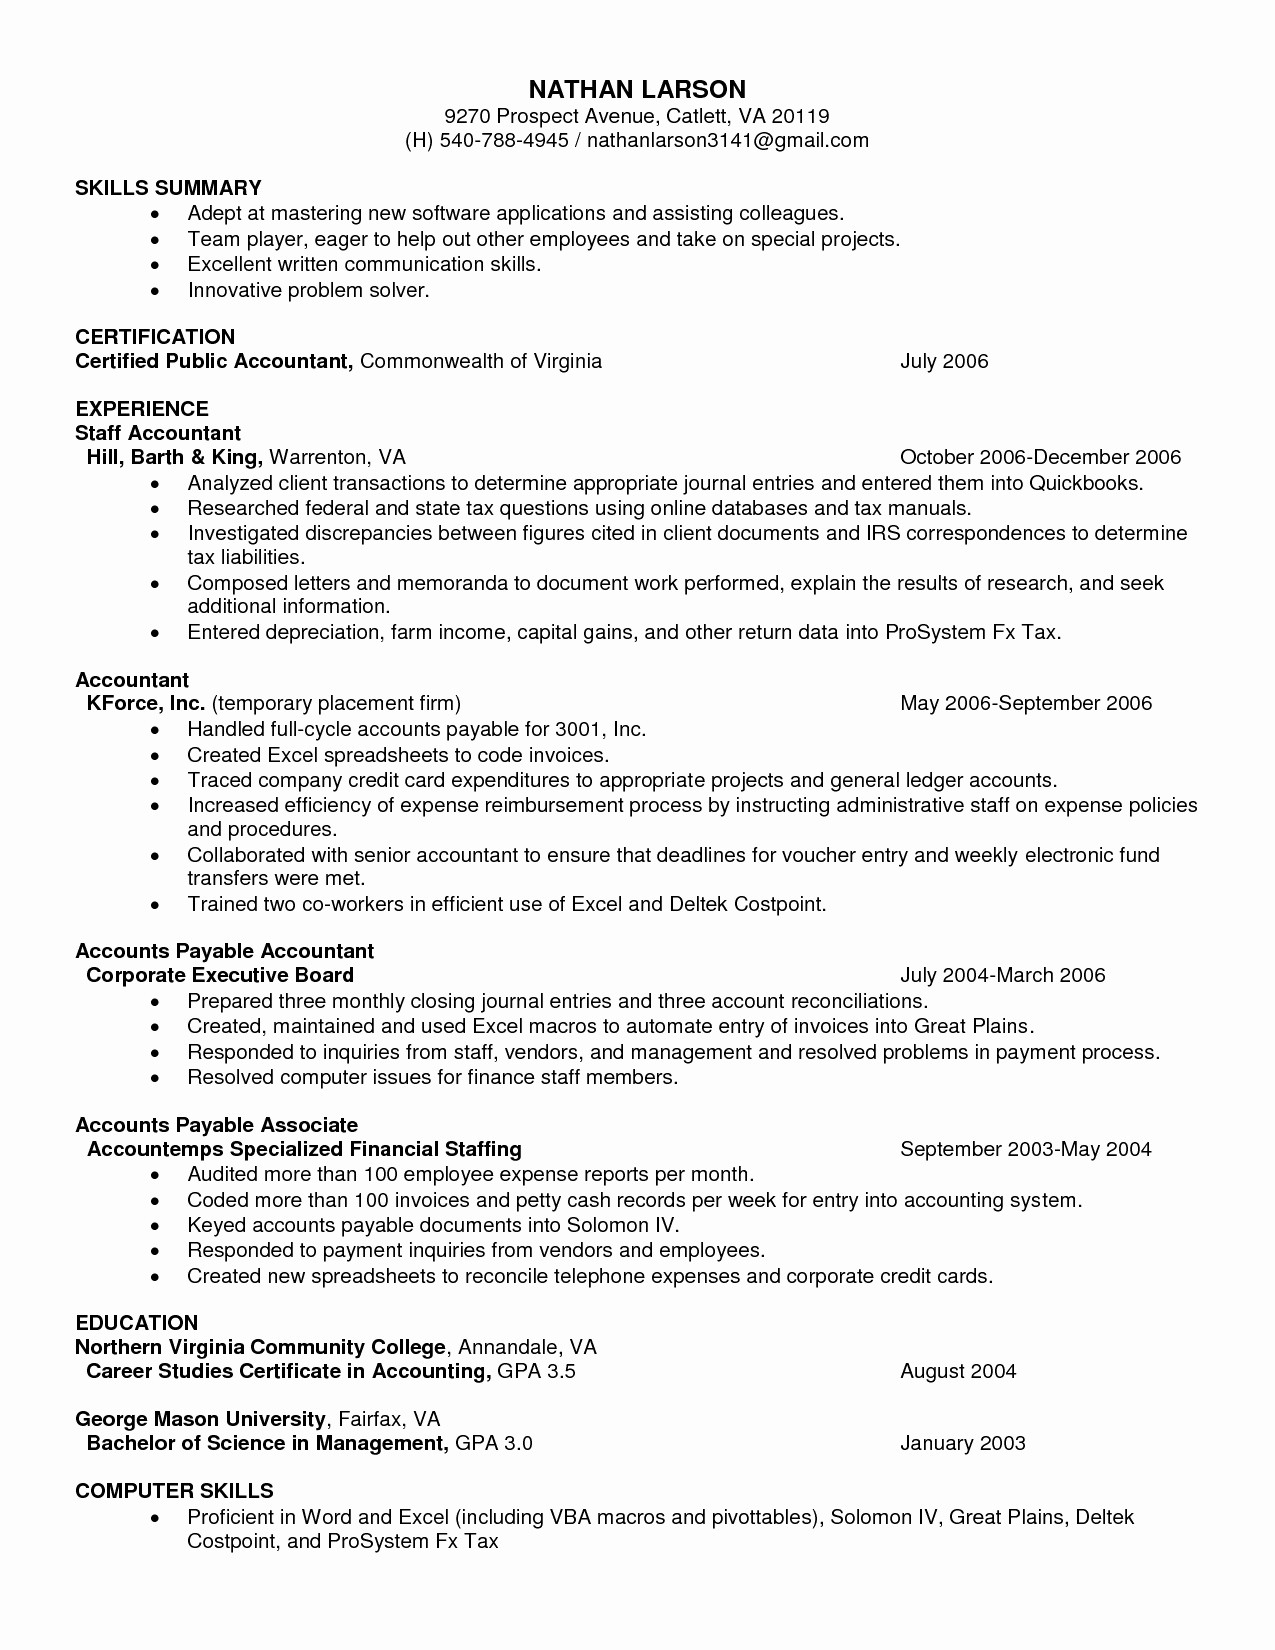 Open Office Cover Letter Template Free - Simple Resume Cover Letter Template Job Announcement Example